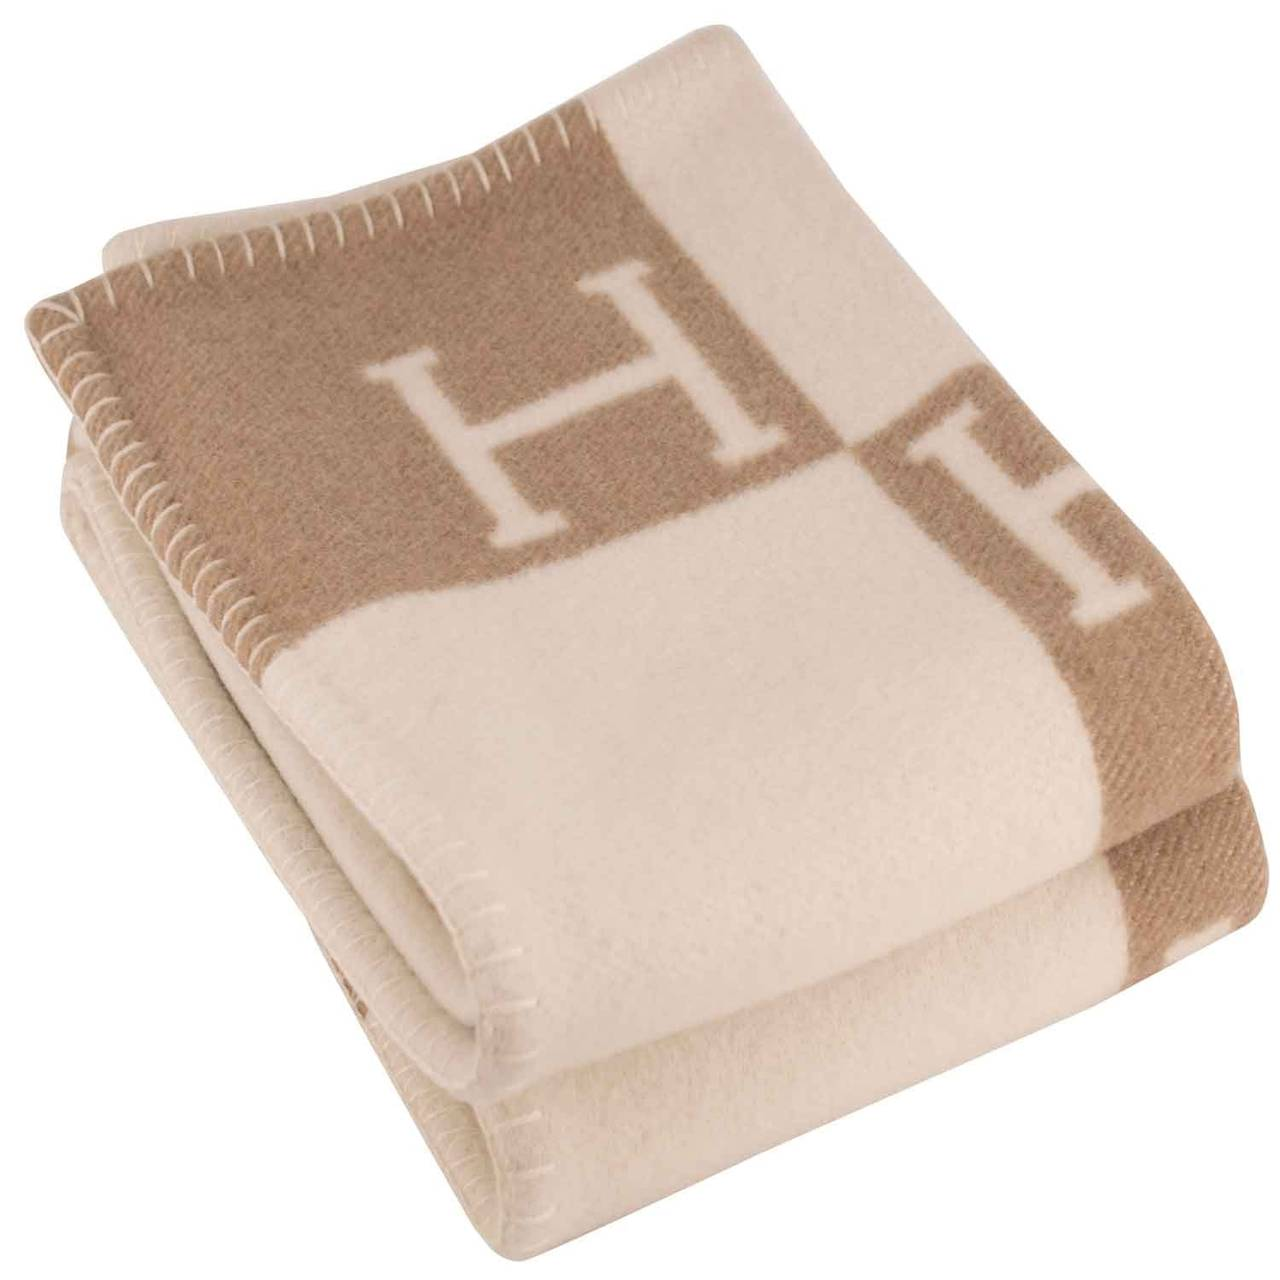 Hermes Childrens Avalon Blanket 100x140cm Ecru Camel 2015